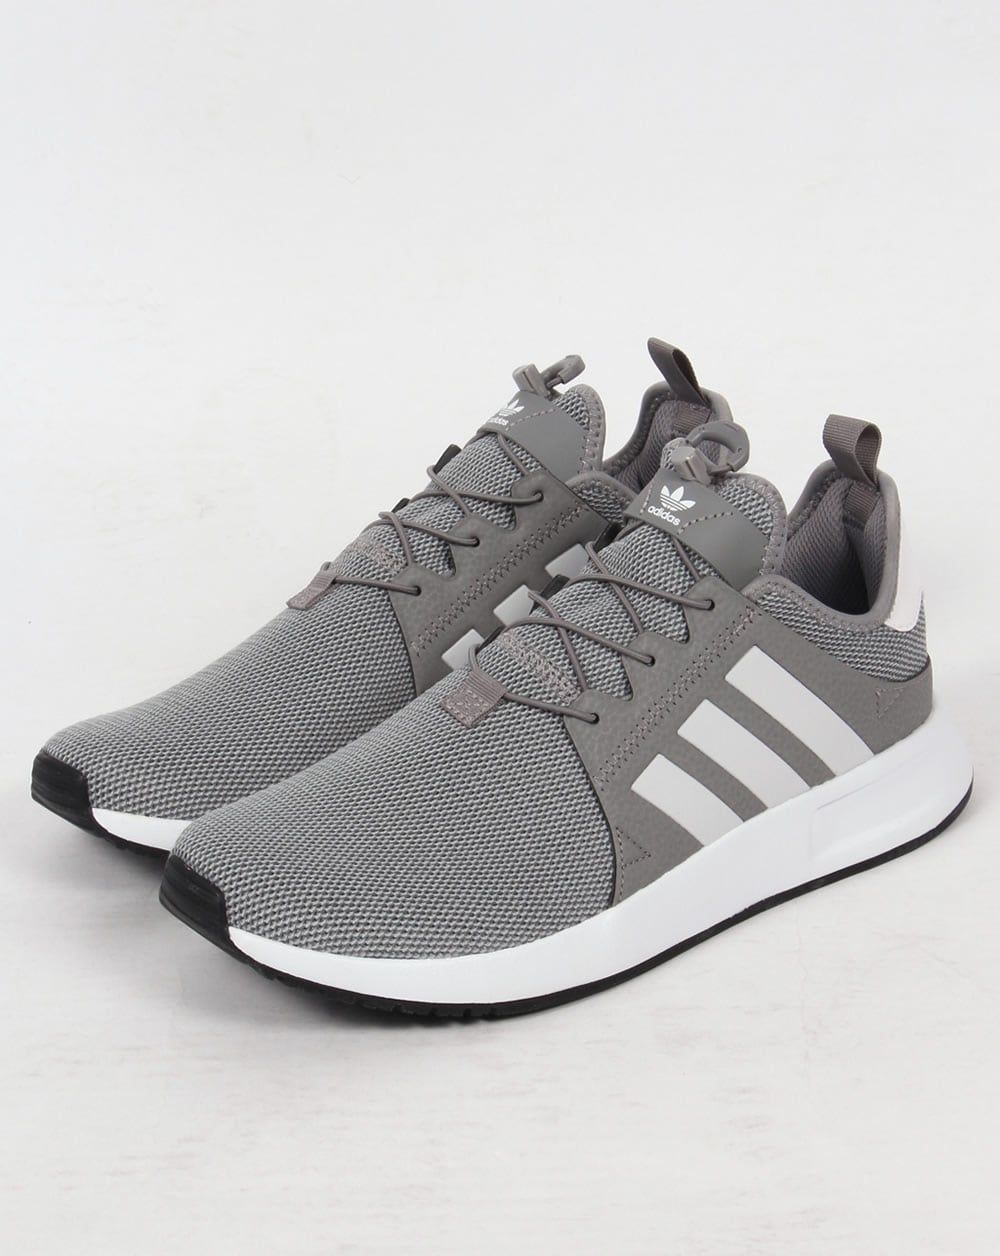 premium selection 92877 87202 Bildresultat för adidas x plr light grey